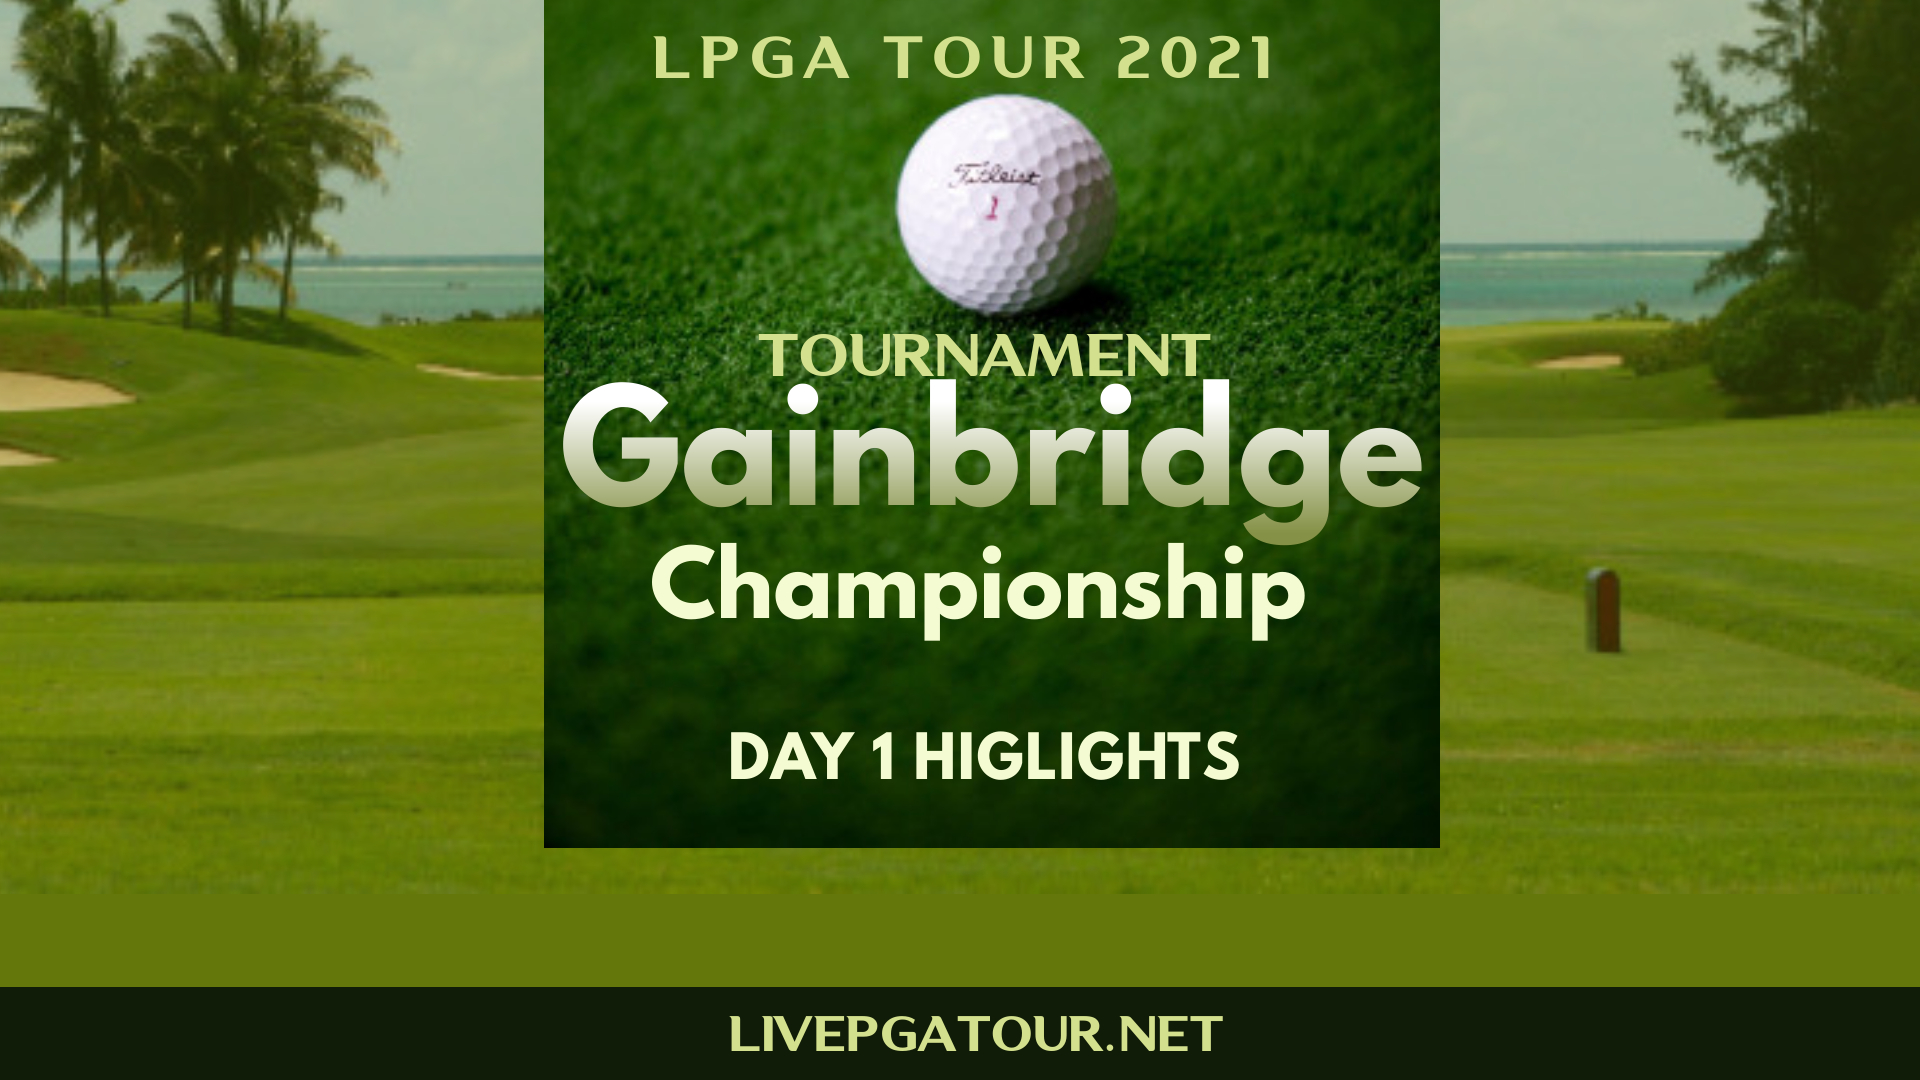 Gainbridge Championship LPGA Tour Day 1 Highlights 2021